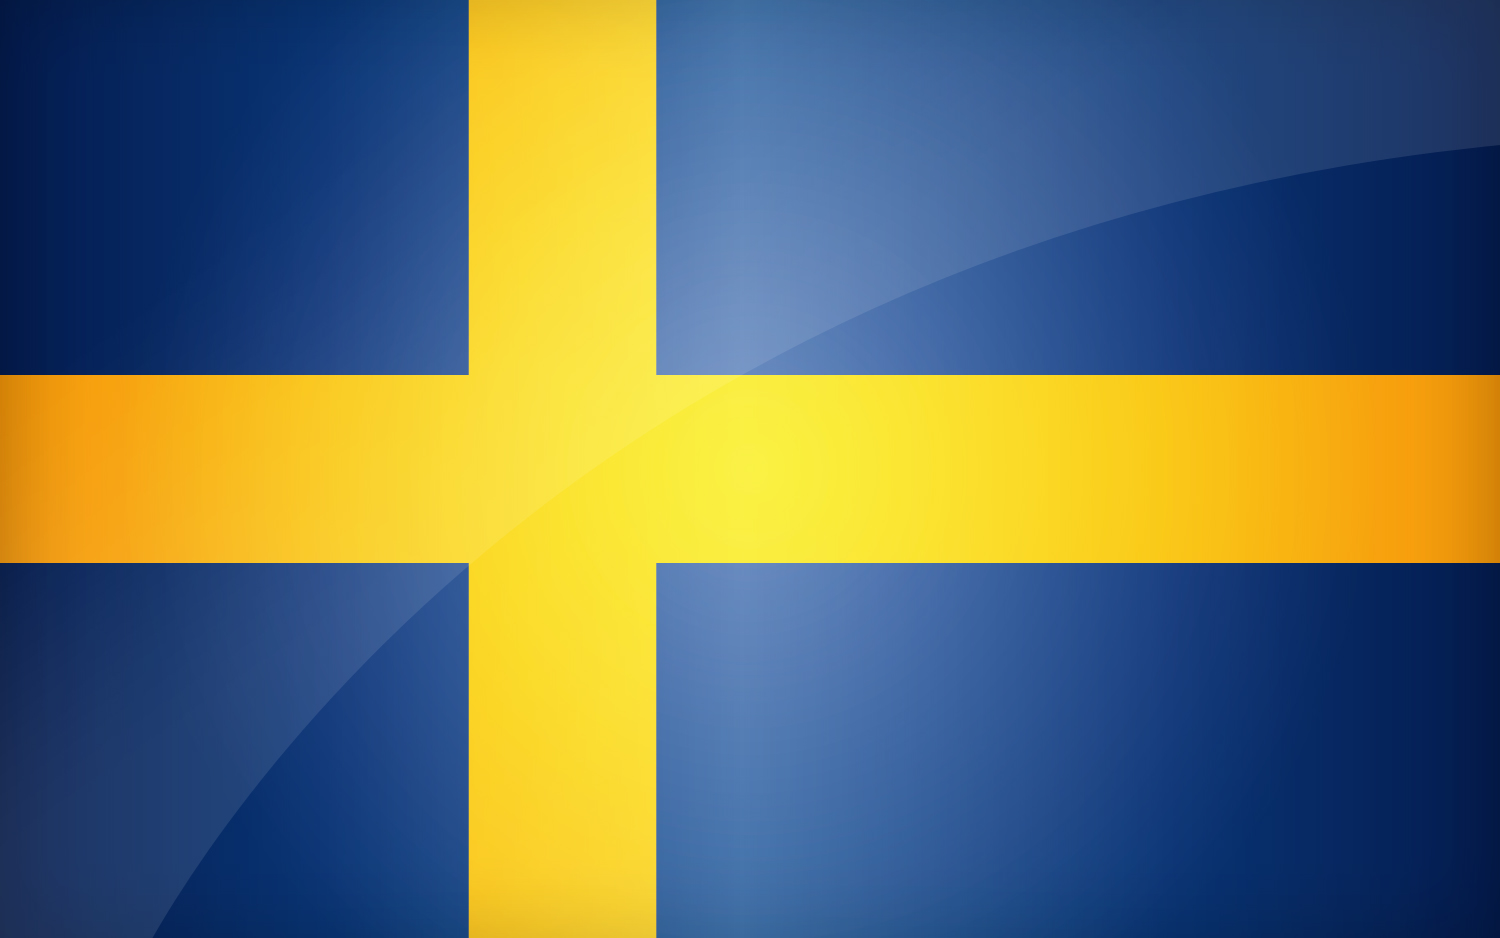 File:Flag of Sweden.svg Wikipedia